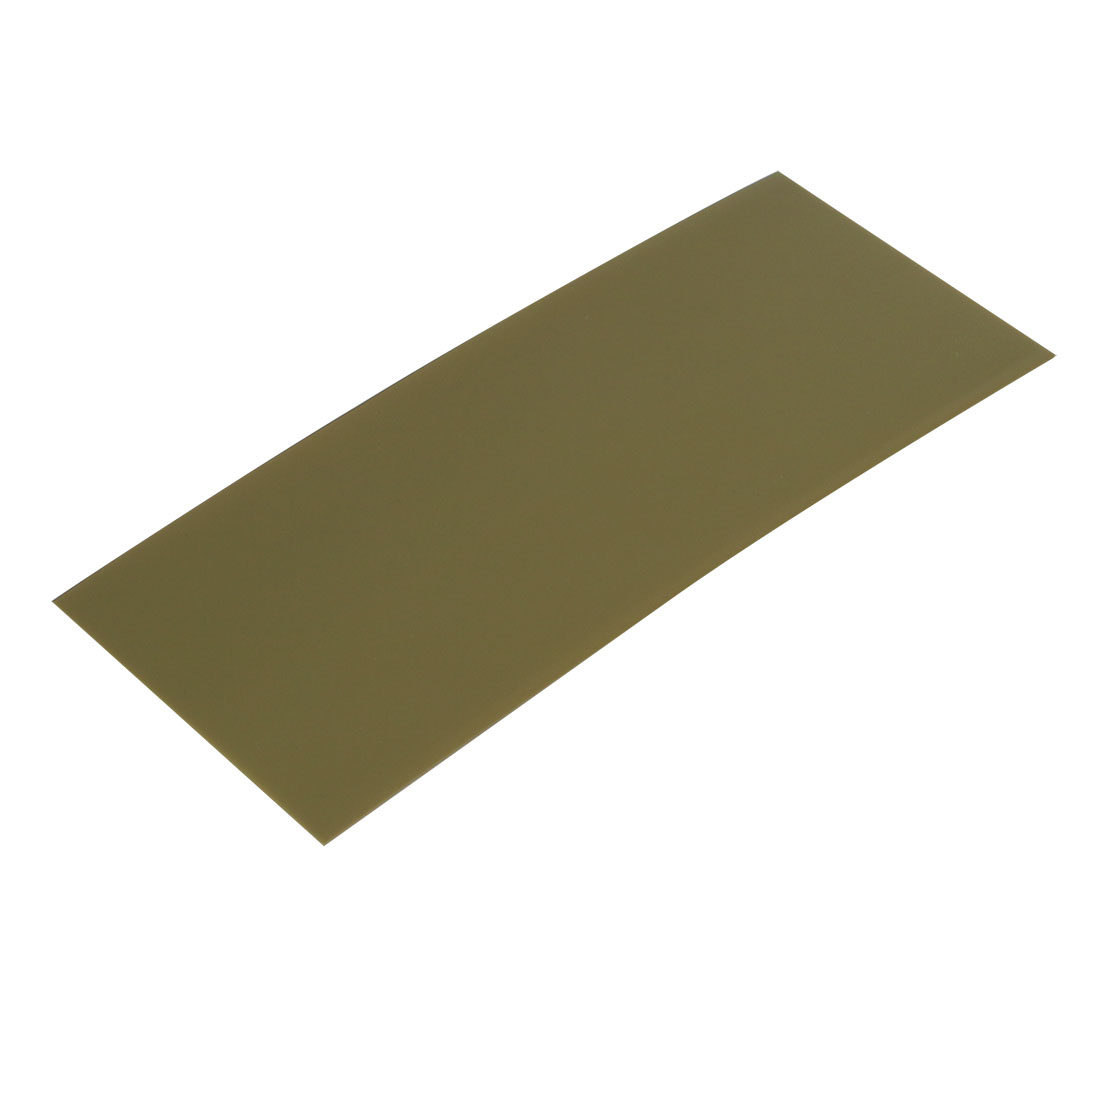 29.5mm Width 72mm Long PVC Heat Shrinkable Tube Army Green for 18650 Battery